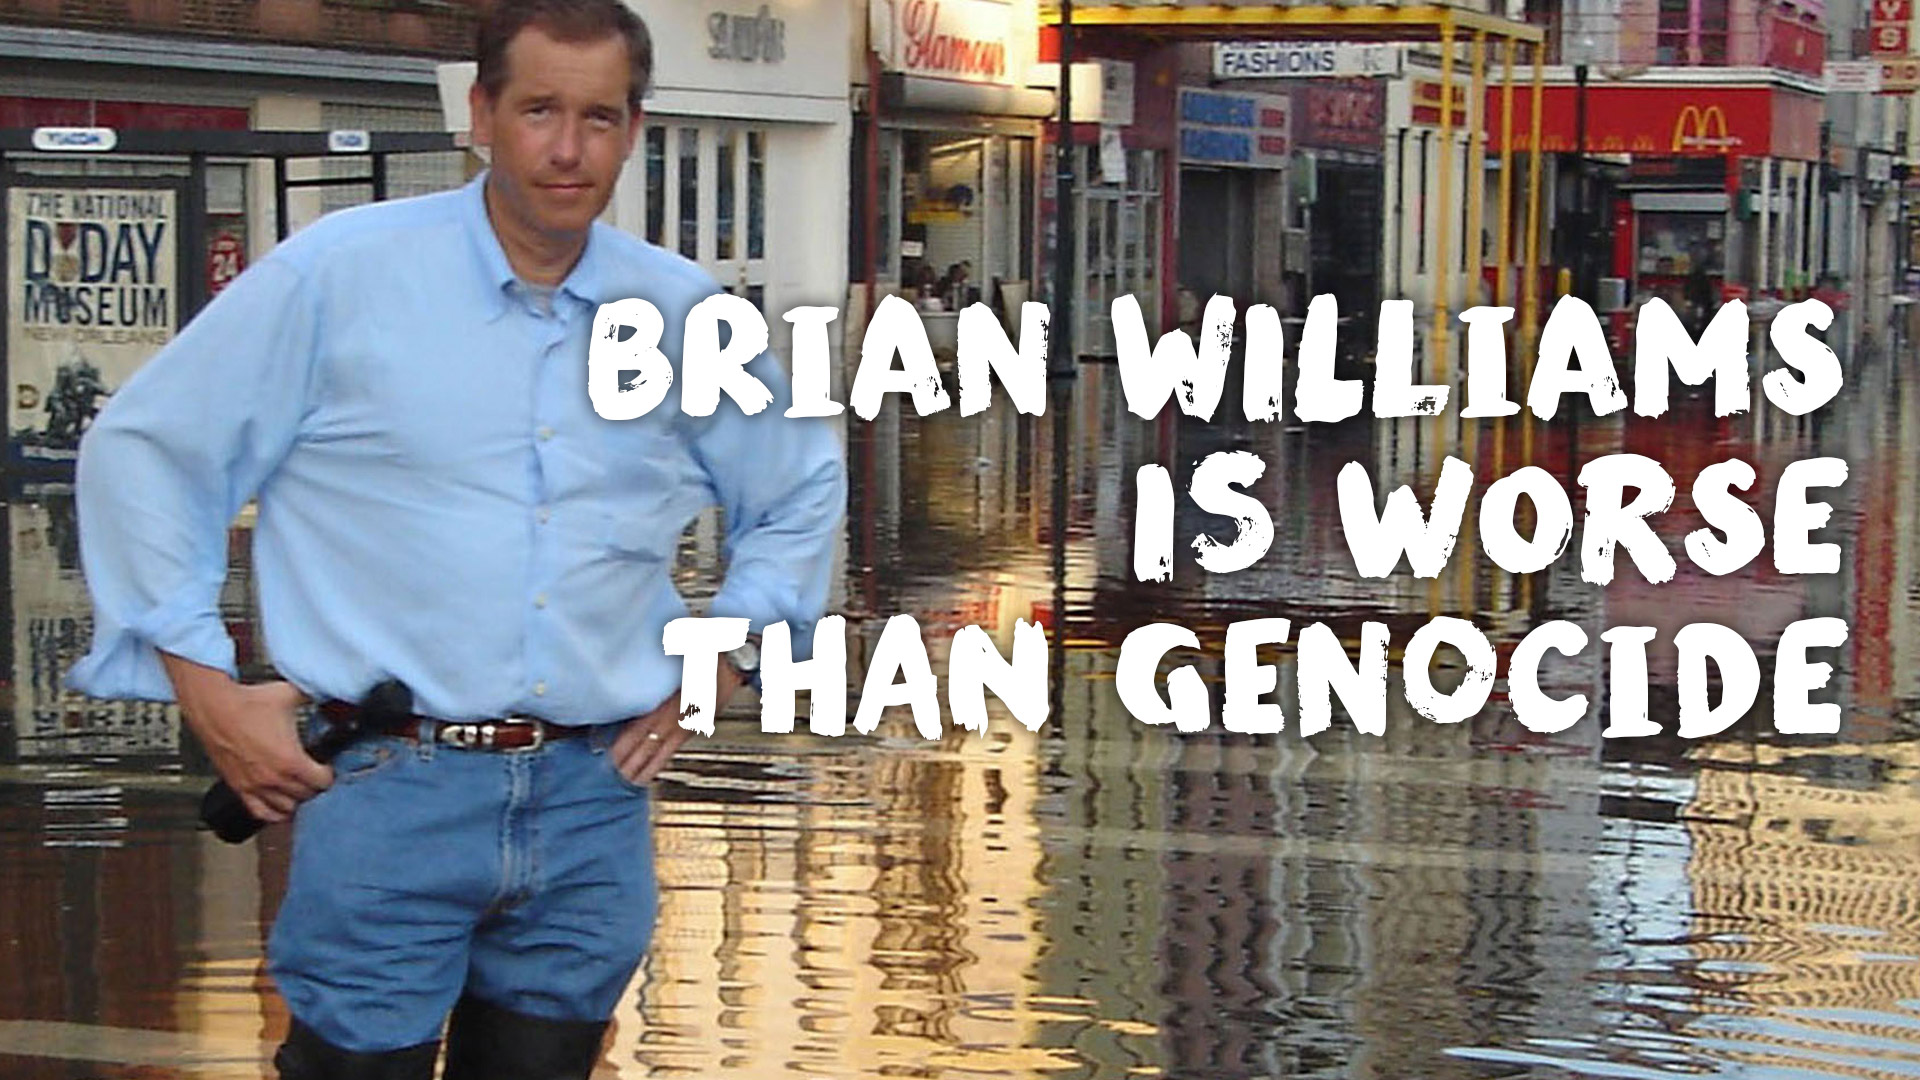 Brian Williams Is Worse Than Genocide